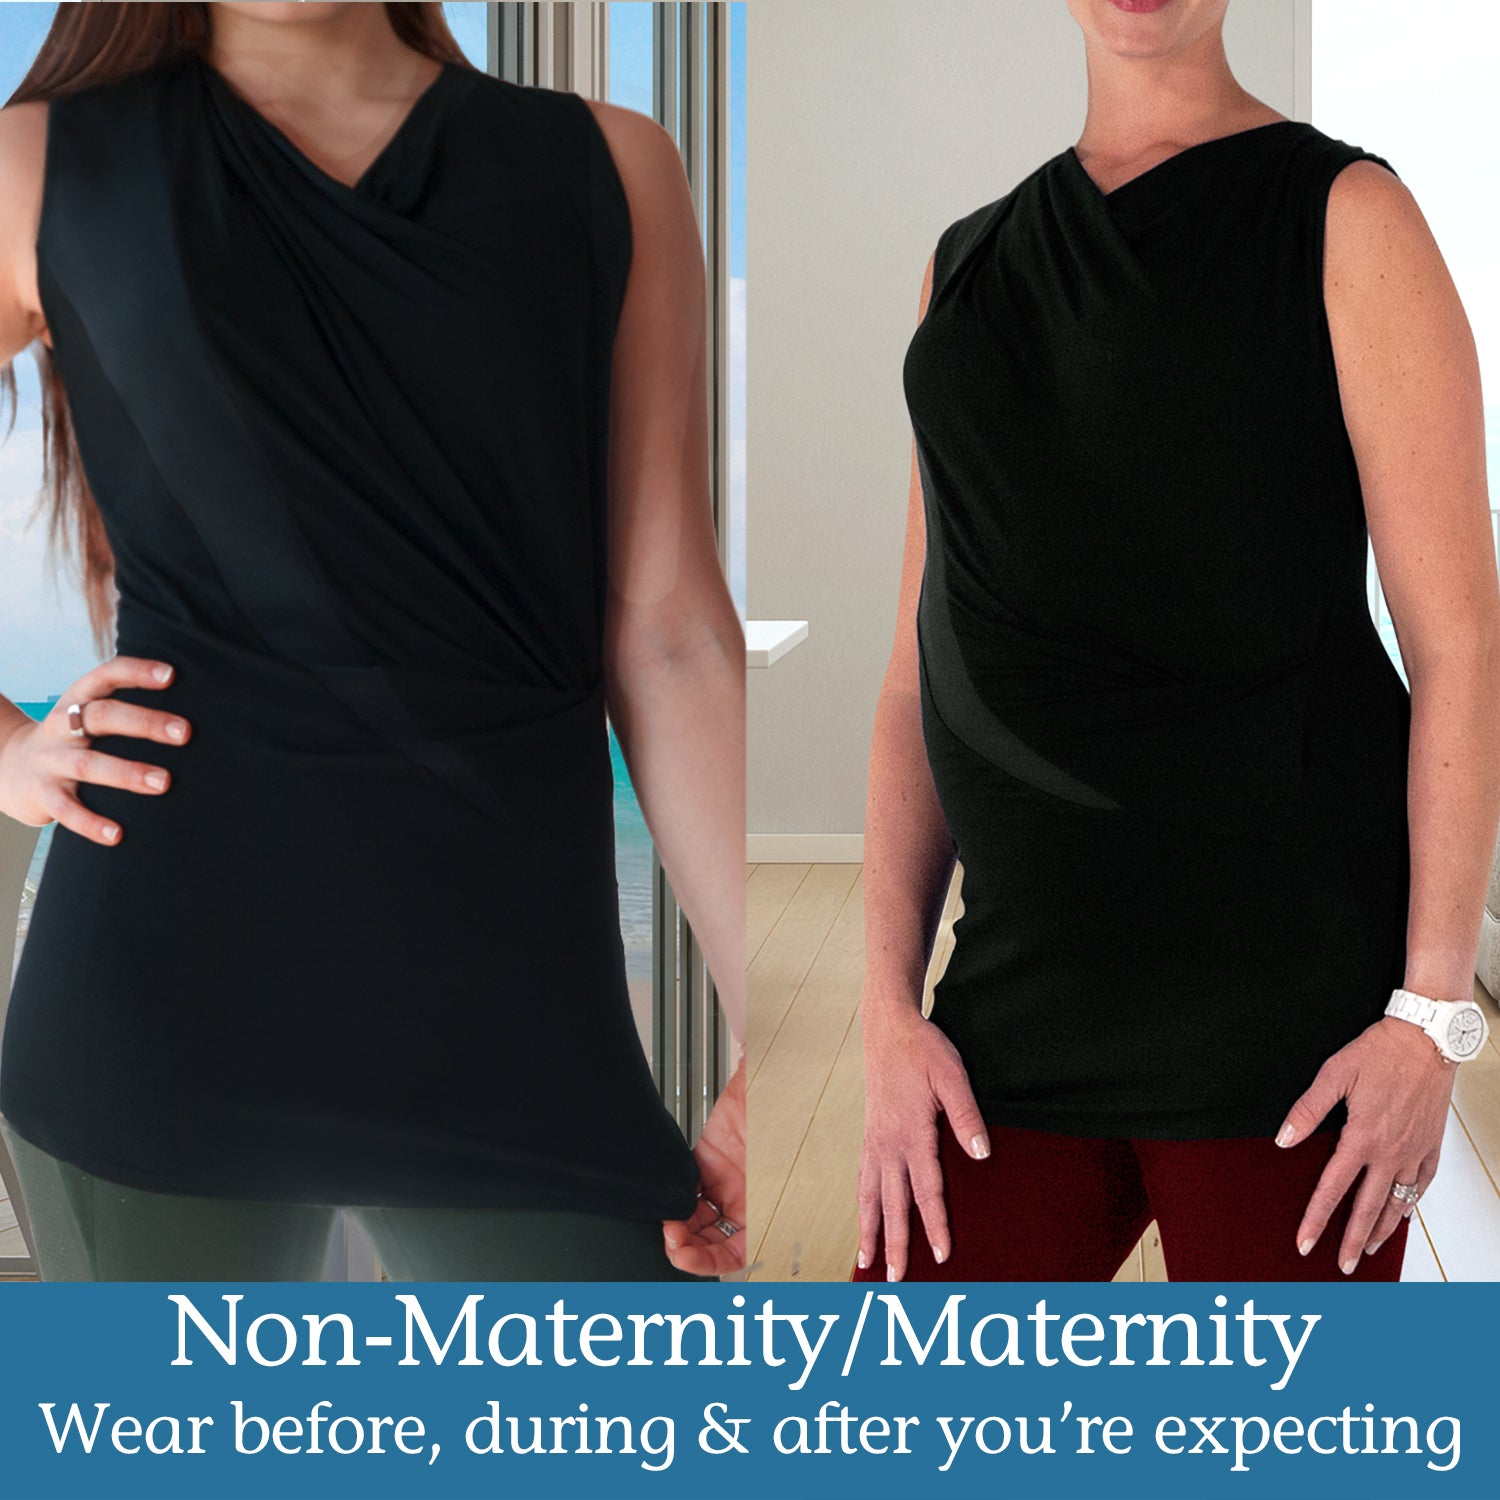 Non-Maternity Clothes for Pregnancy: Because, if You Love it, You'll Want to Keep Wearing It